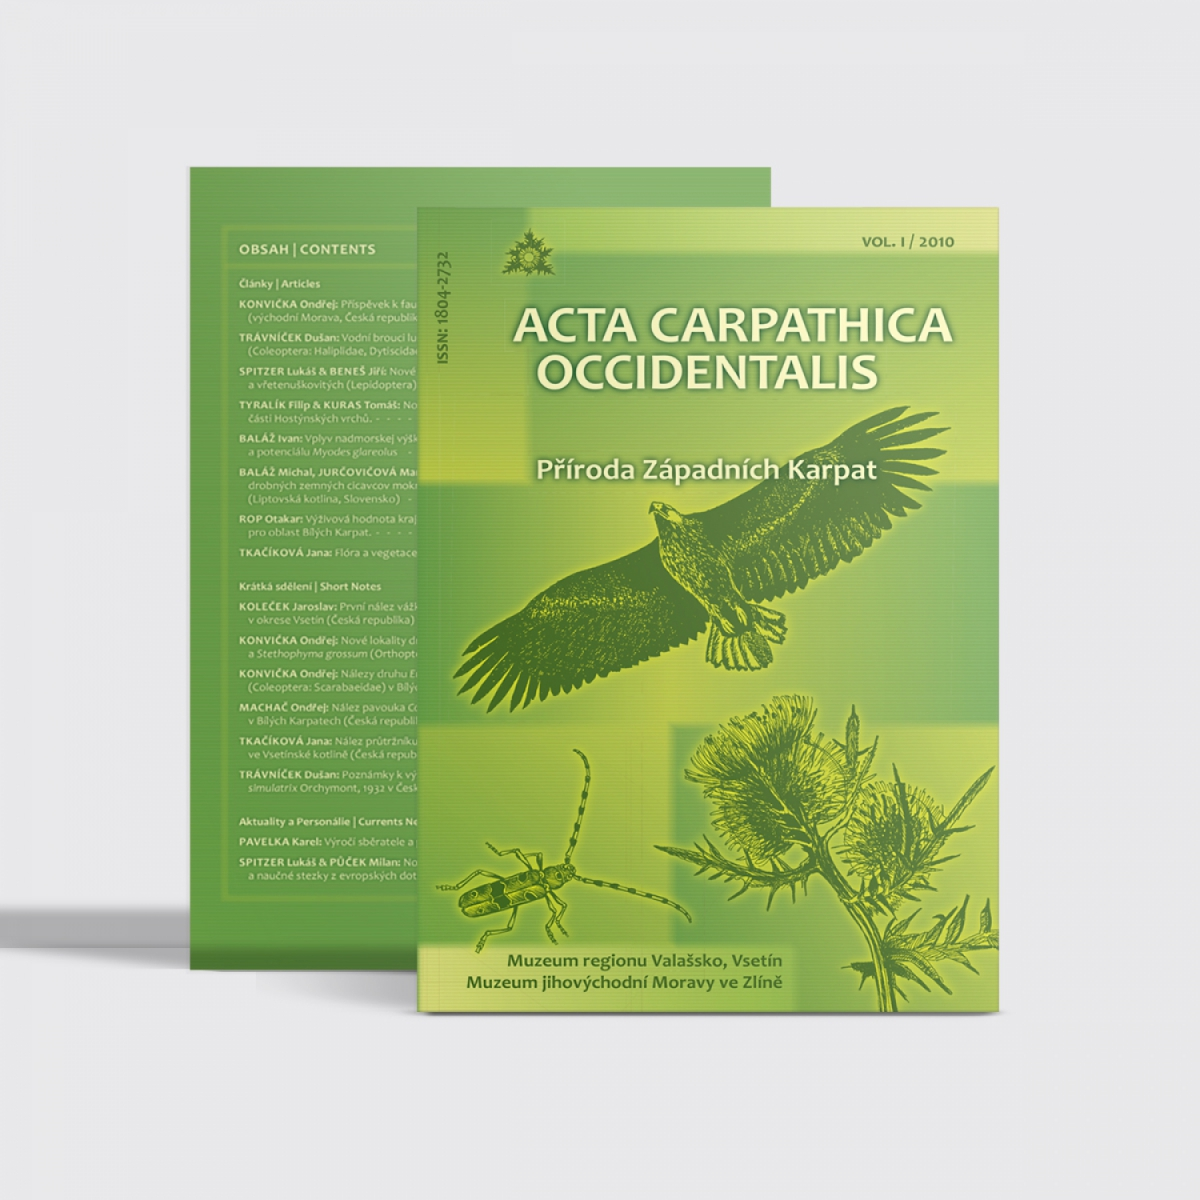 Acta Carpathica Occidentalis 1/2010